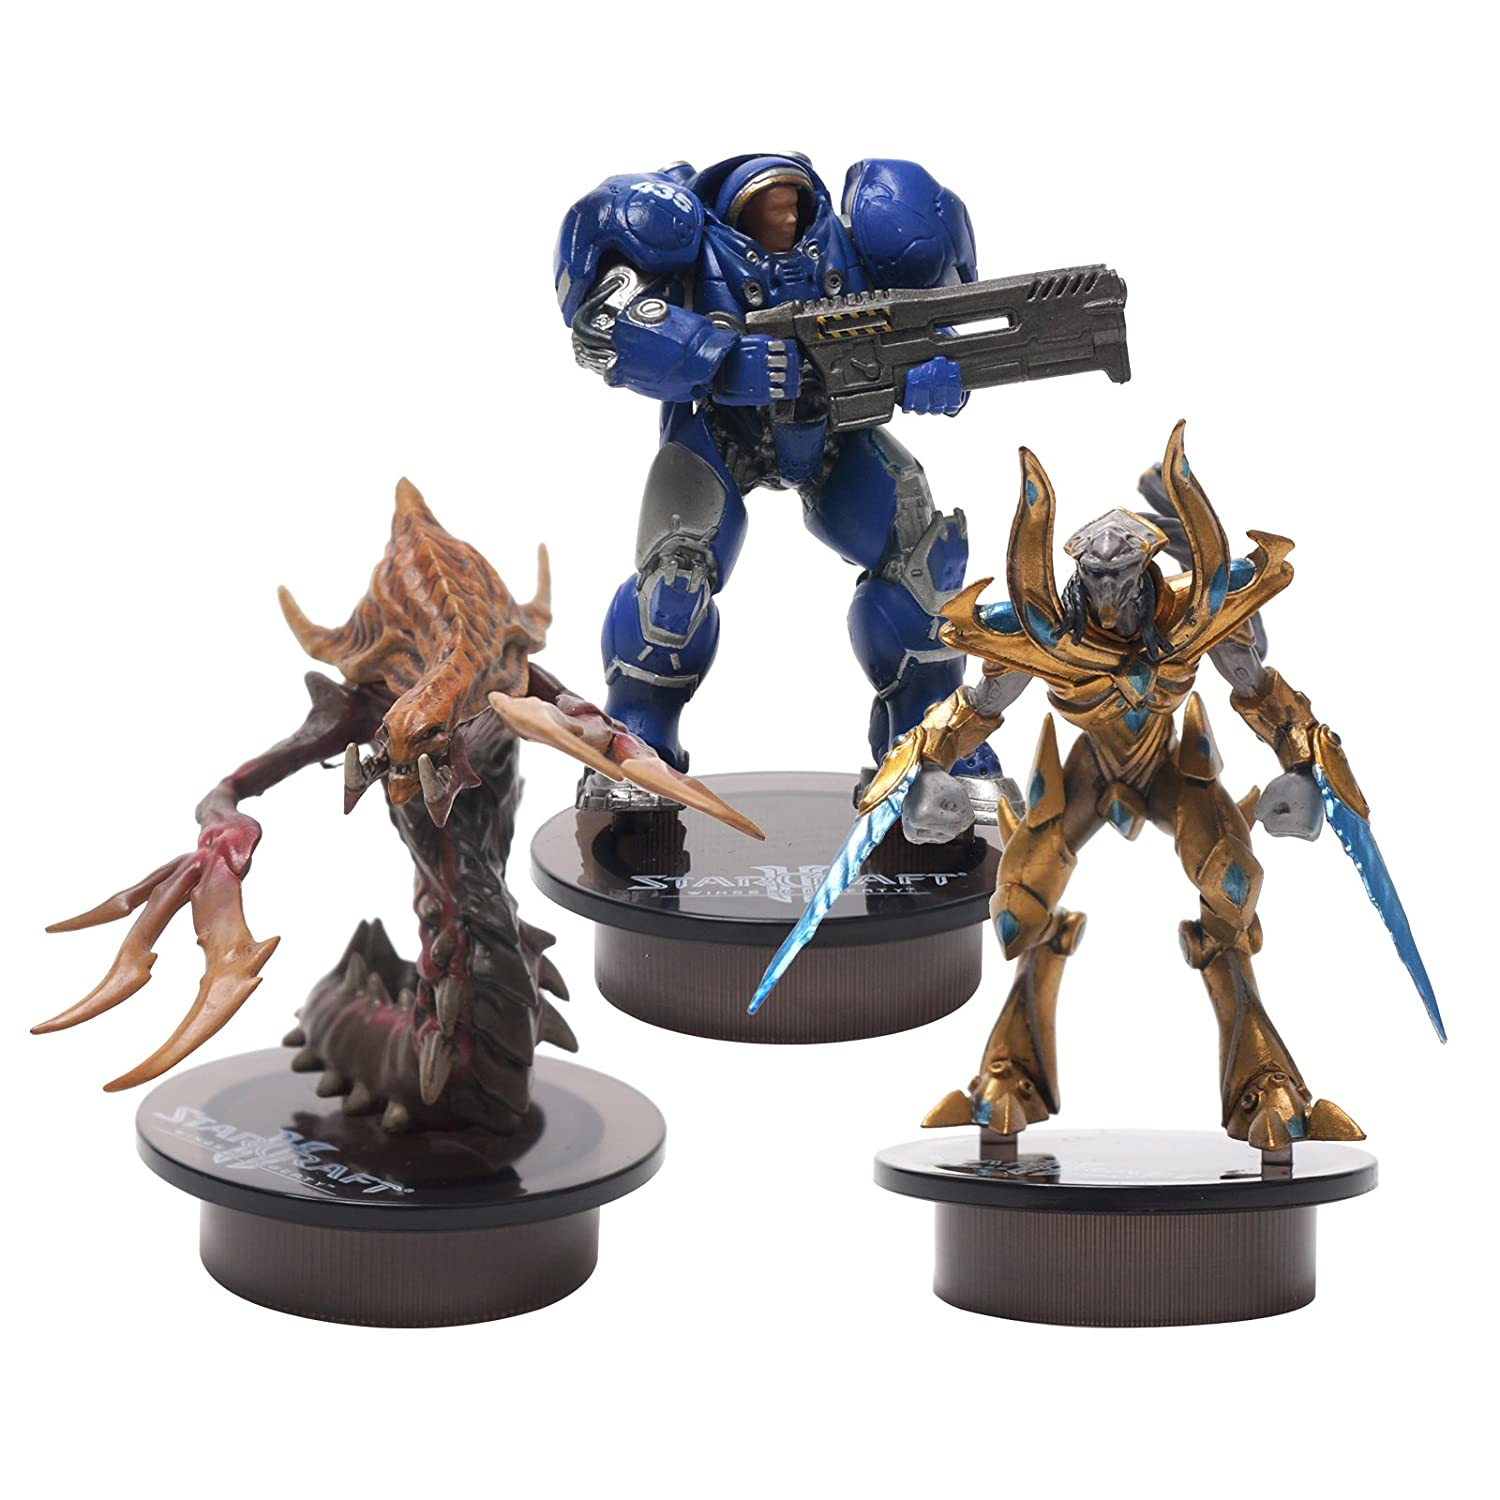 [STARCRAFT 2 KOTOBUKIYA] TERRAN (Marine), PROTOSS (Zealot) , HYDRALISK (Zerg) Bottle Cap Figure Collection Miniature 3 pcs Set by Kotobukiya